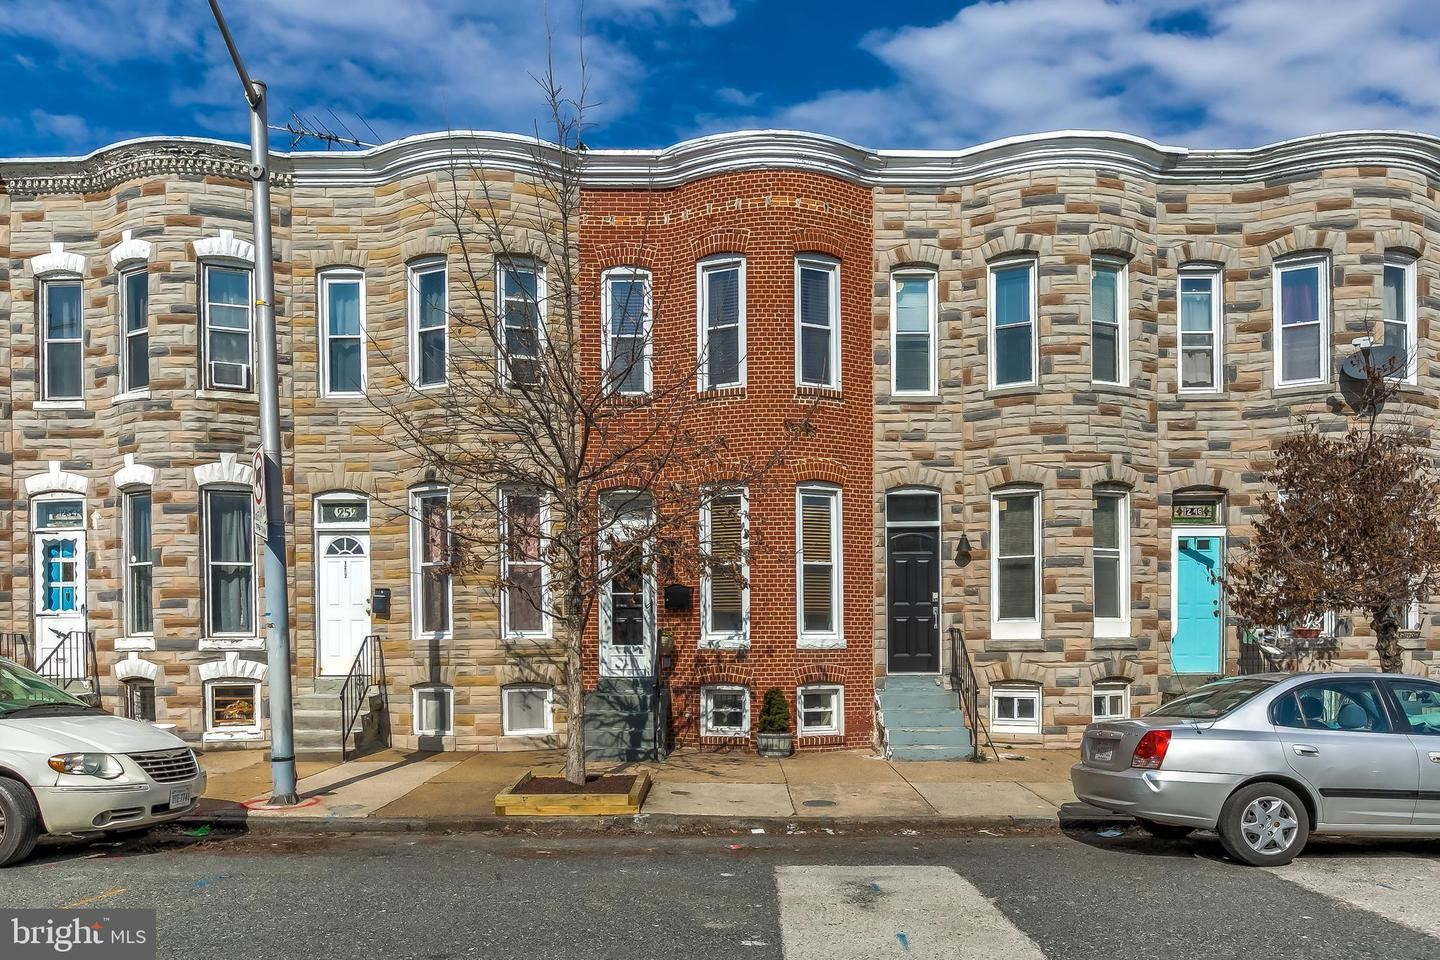 1250 CARROLL ST, Baltimore, MD 21230 - MLS#: MDBA540608